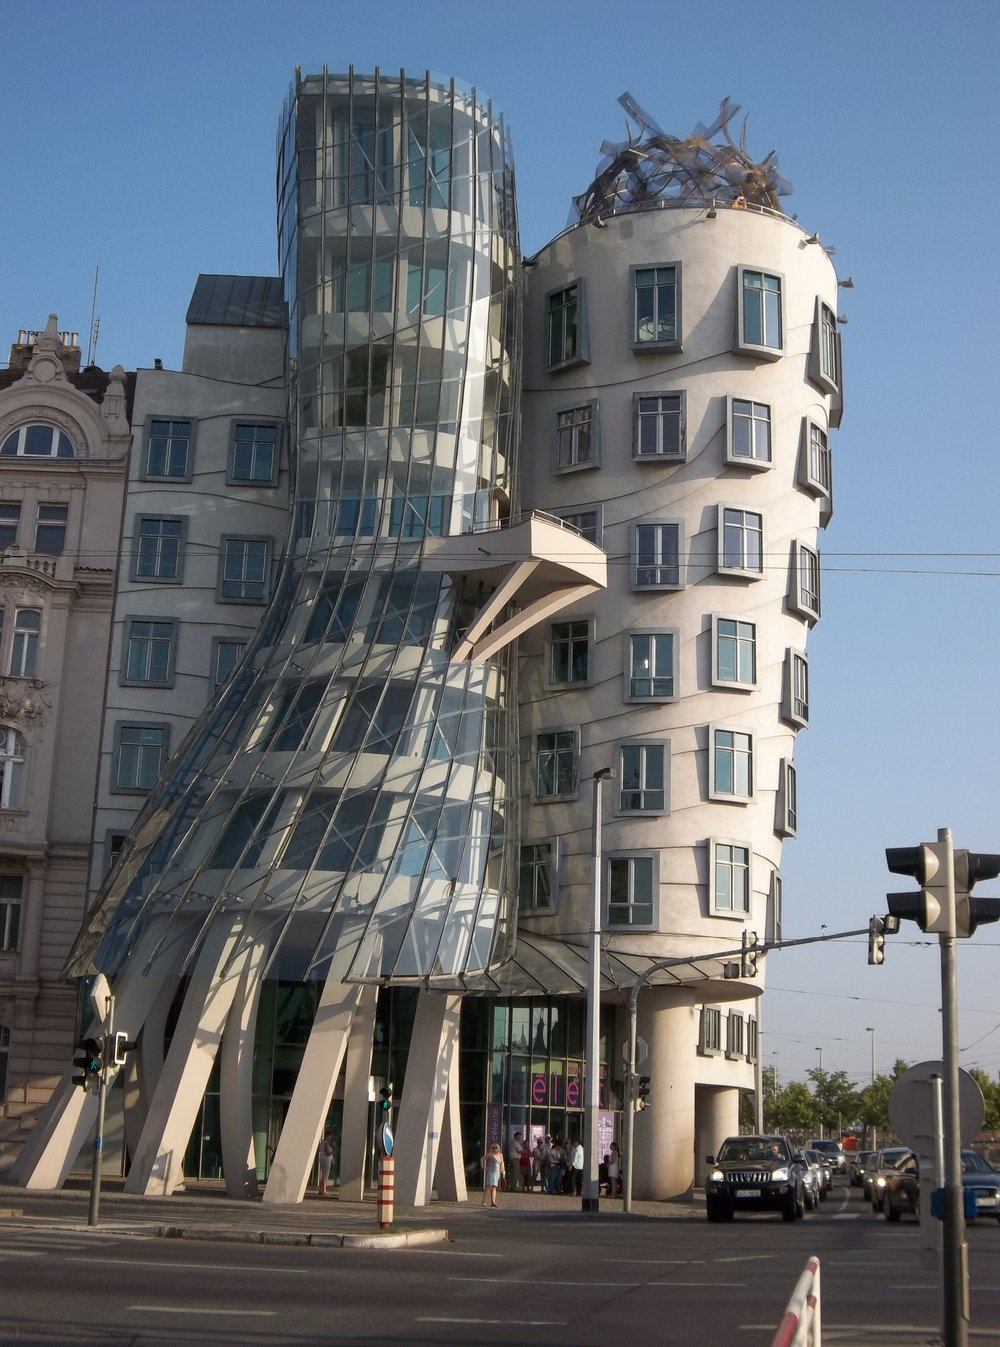 The architect Frank Gehry's shape-shifting Dancing House.